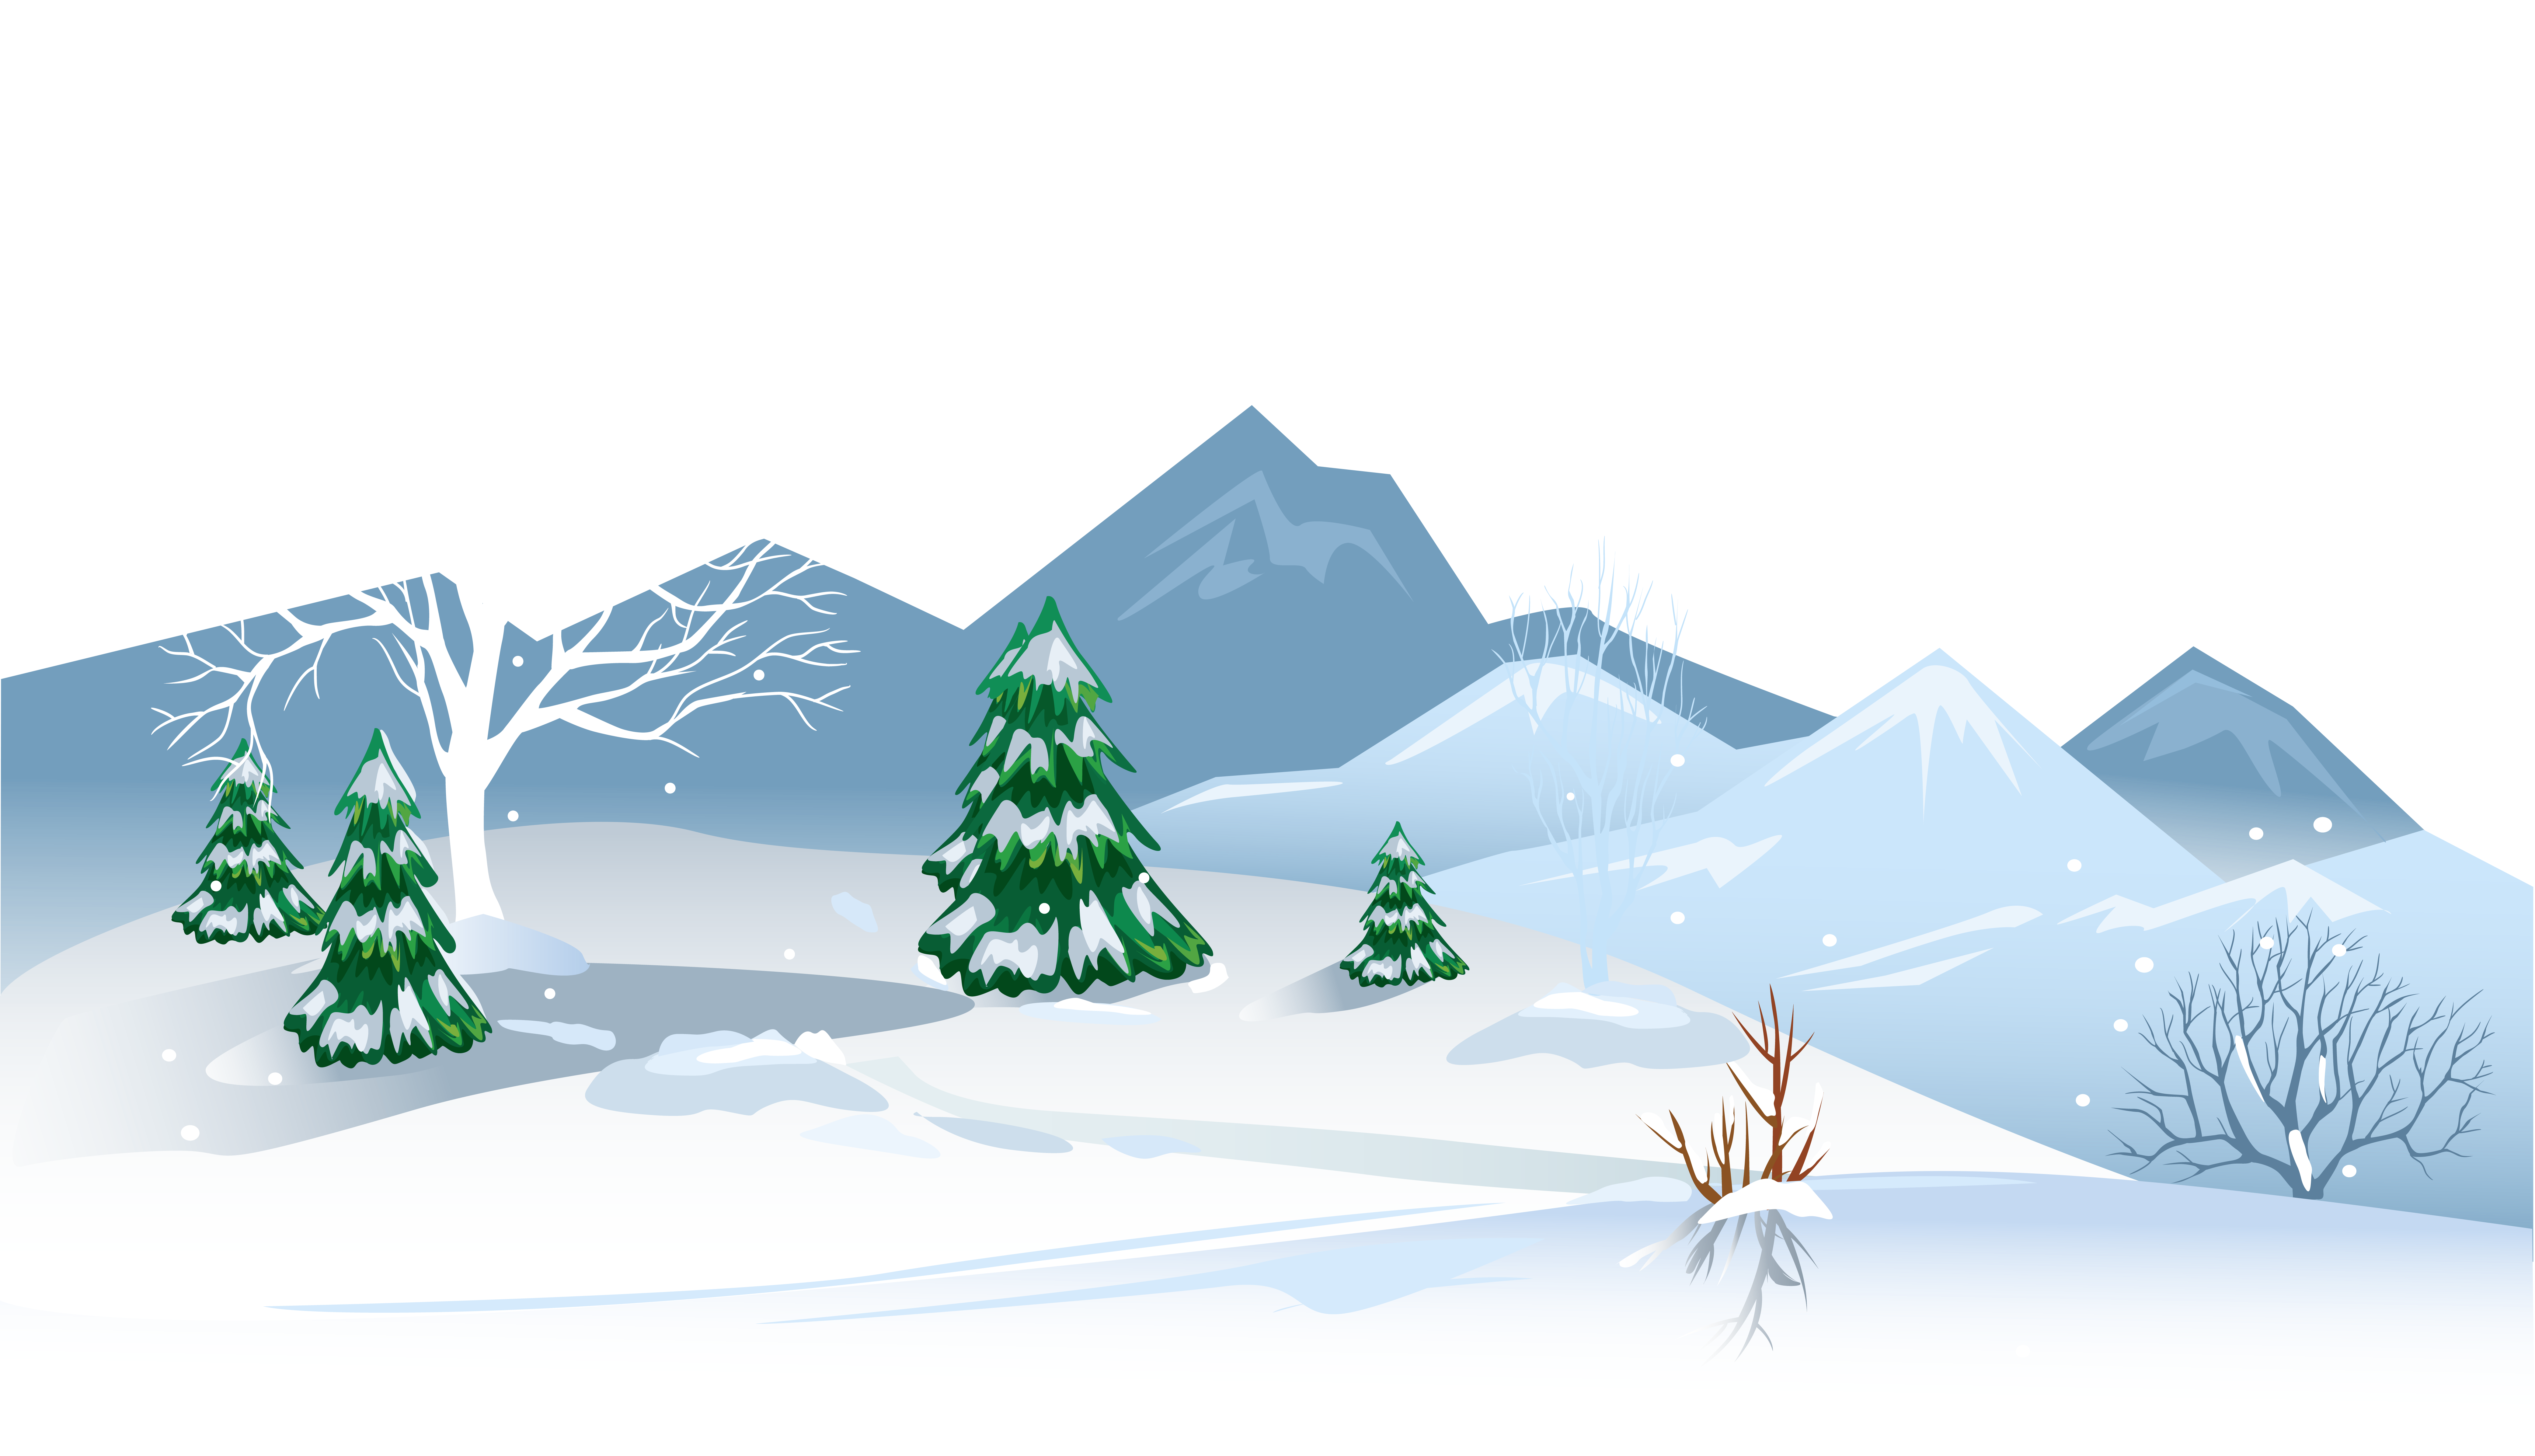 Winter clipart snowy, Winter snowy Transparent FREE for.